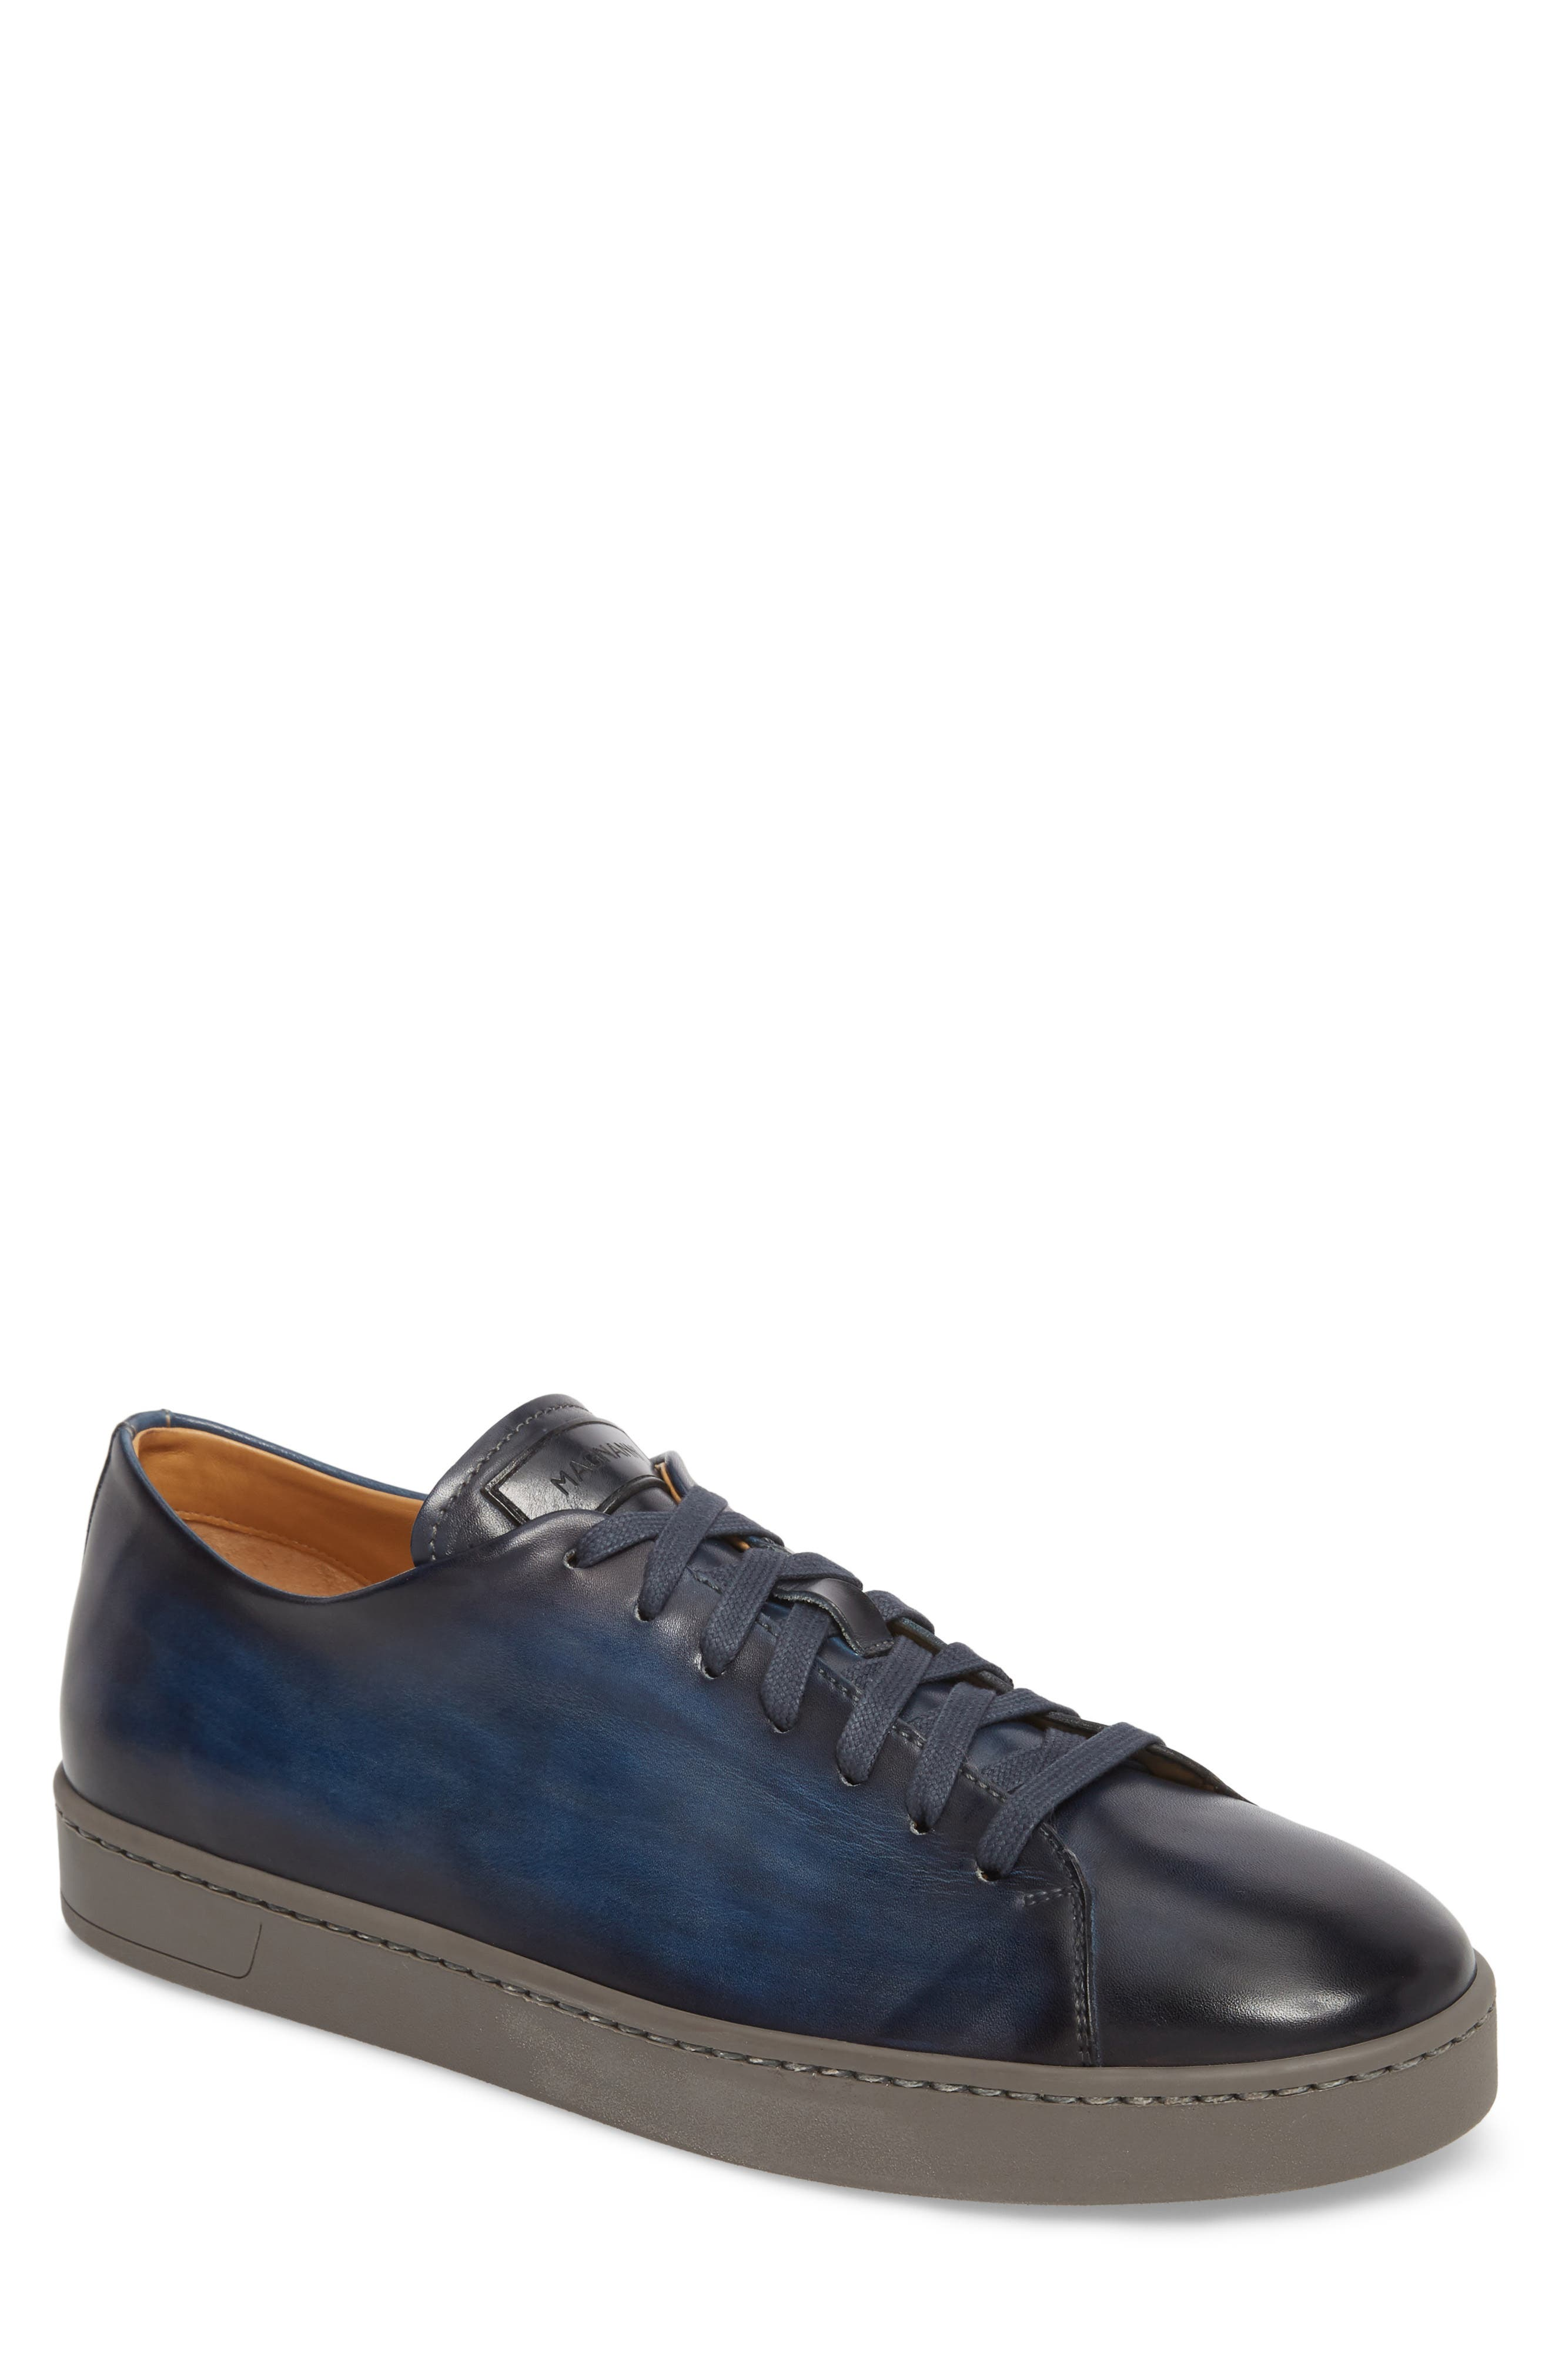 Belmont Lo Sneaker,                             Main thumbnail 1, color,                             NAVY LEATHER